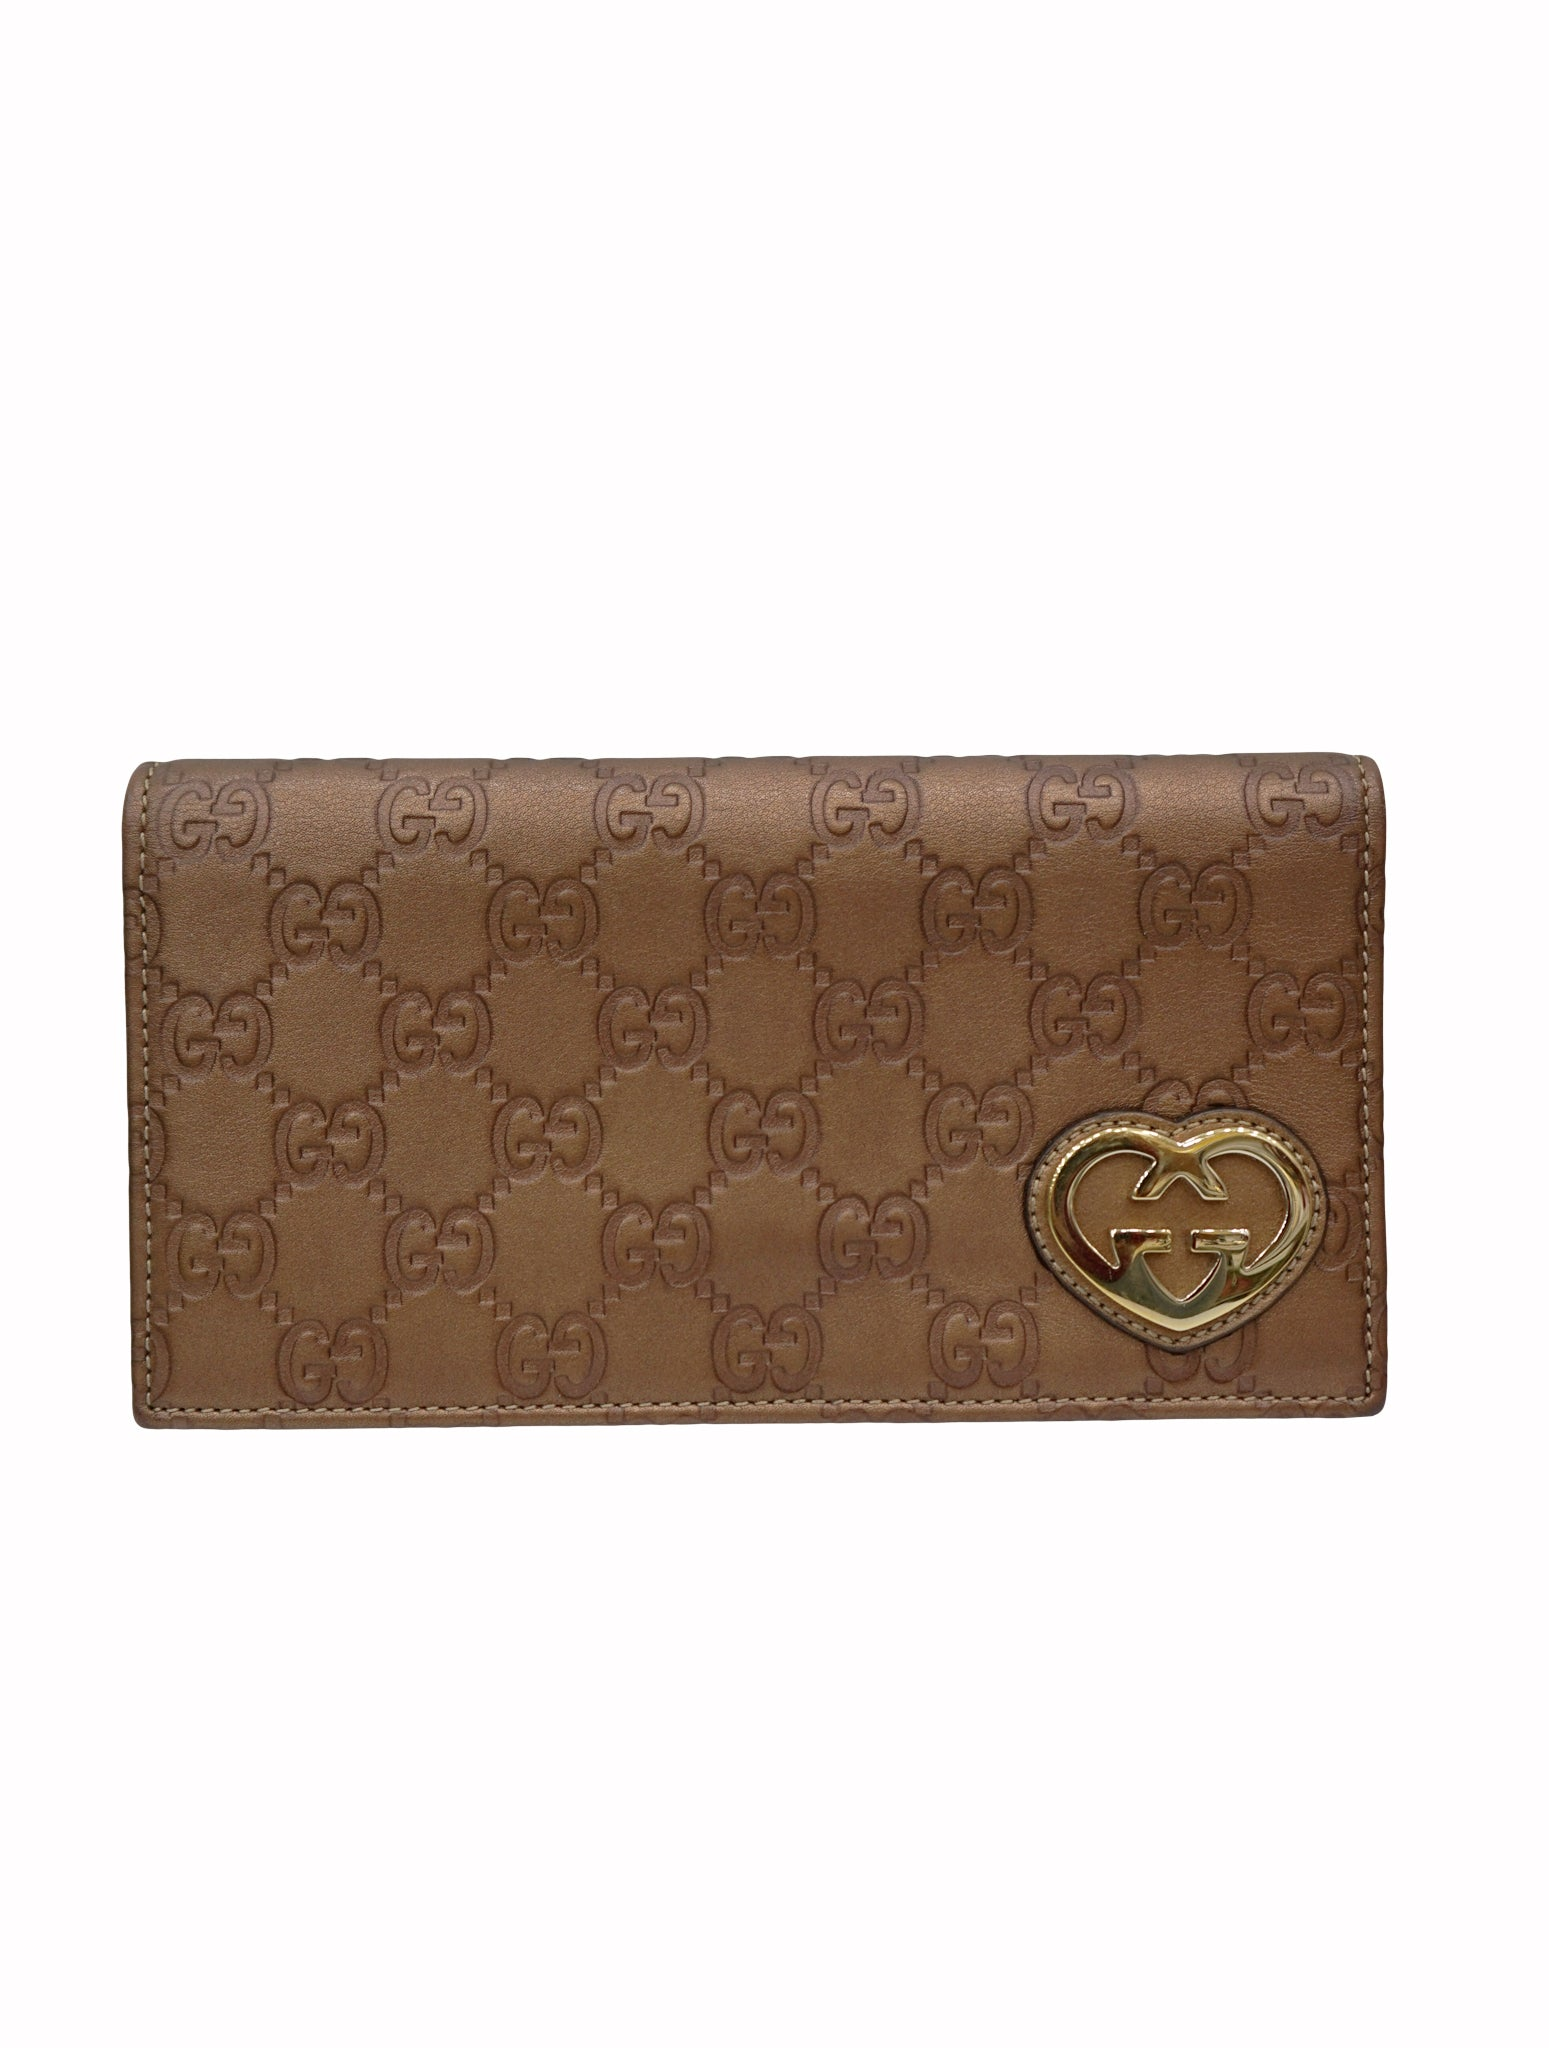 MONOGRAM LOVELY HEART CONTINENTAL WALLET